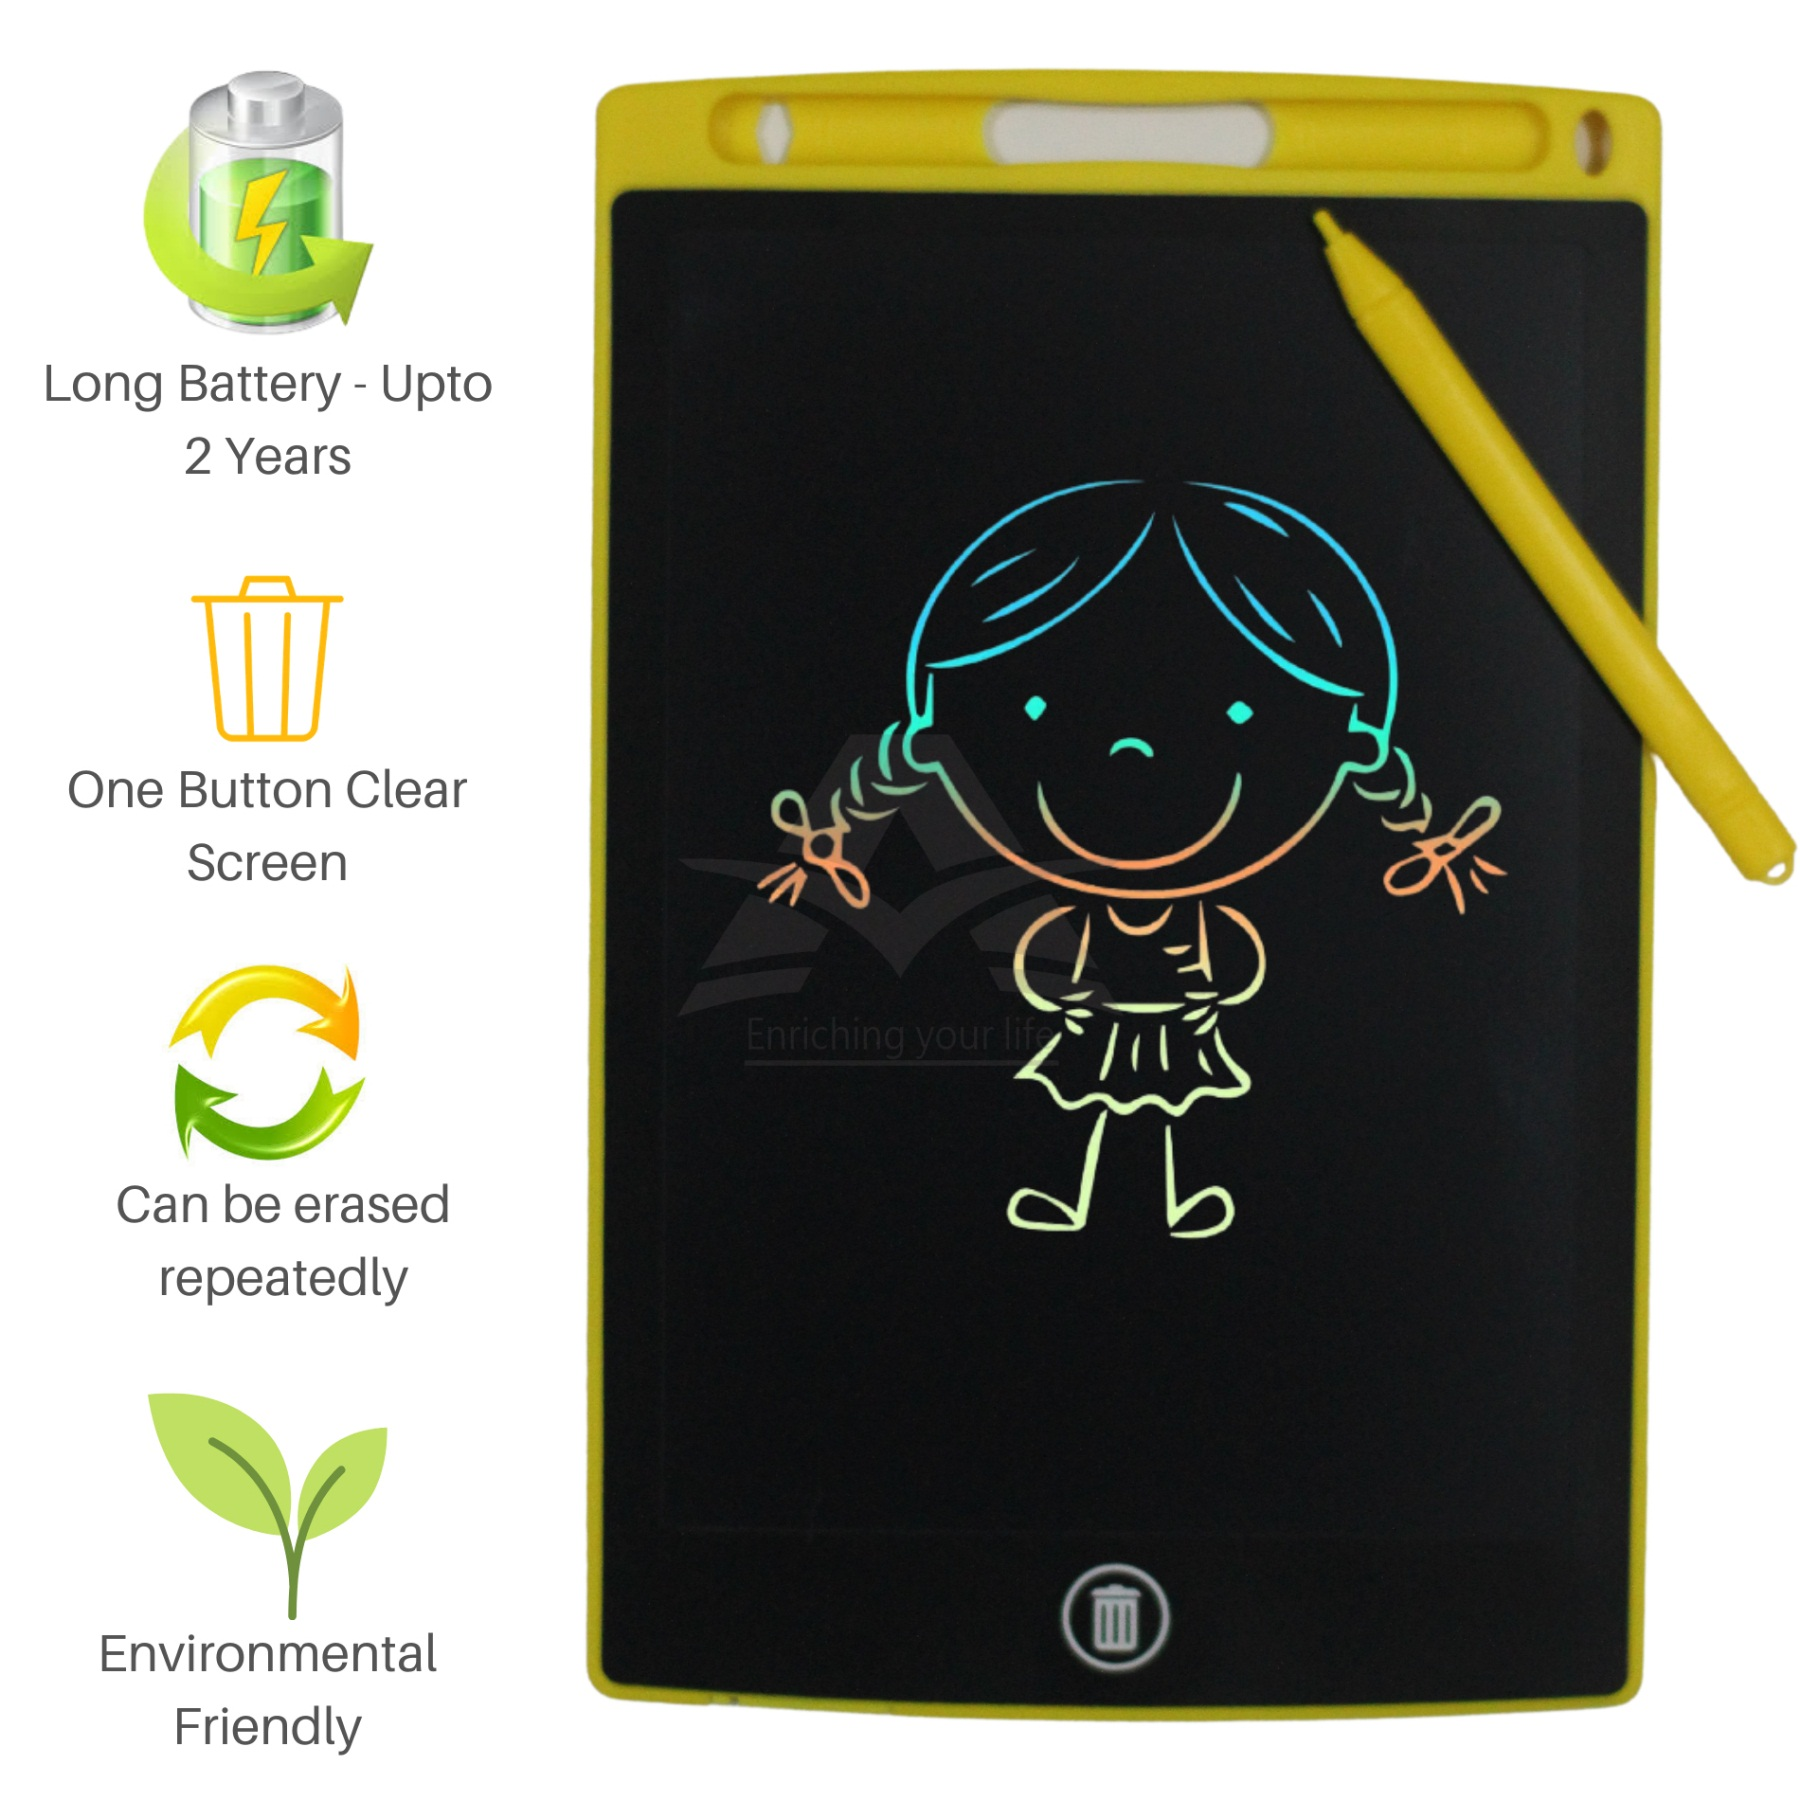 LCD Writing Tablet – Colorful Screen - Multicolor - Electronic Portable High Quality Drawing Tablet and Gadget for Kids and Adults at Home, School and Office with Erase Button – 8.5 Inch Display Ultra Slim Writing Pad